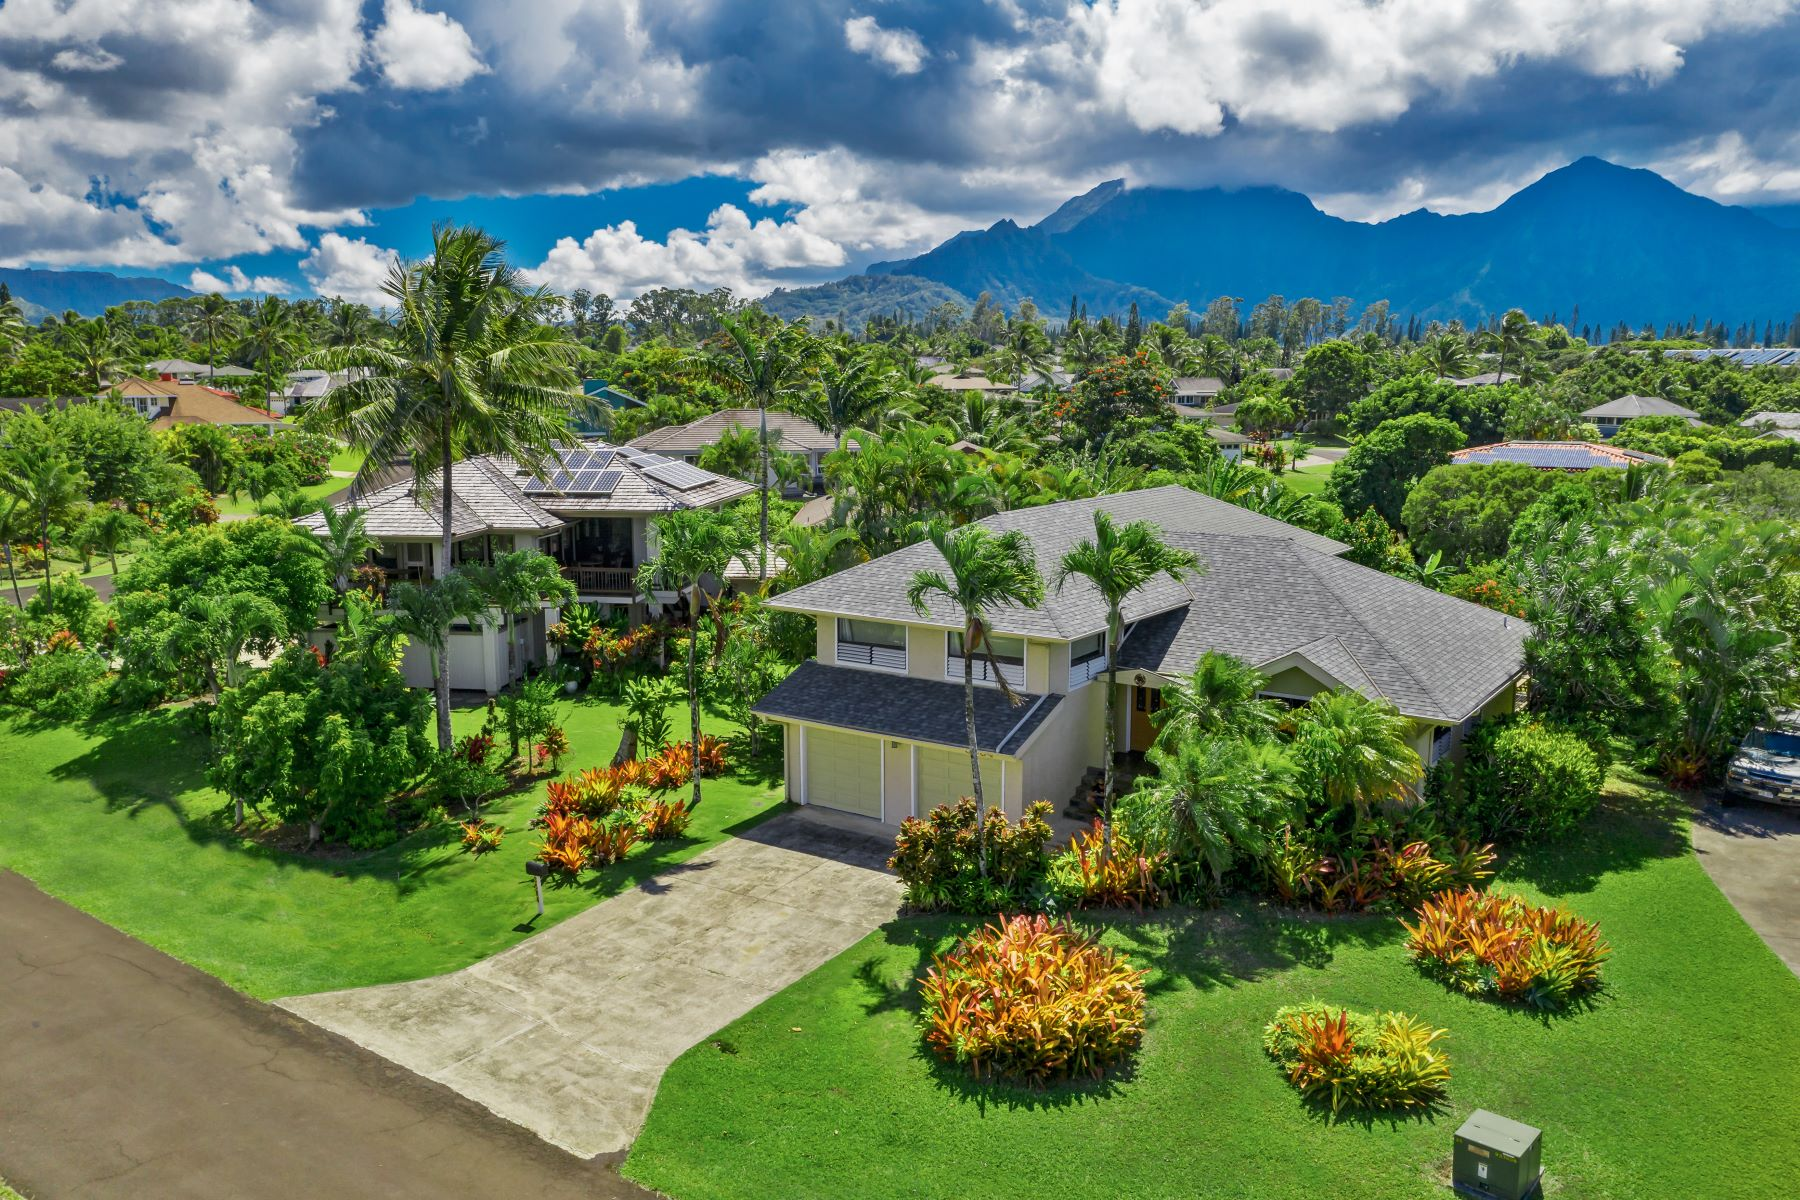 Single Family Homes for Sale at 3584 KAWEONUI RD PRINCEVILLE, HI 96722 3584 KAWEONUI RD Princeville, Hawaii 96722 United States